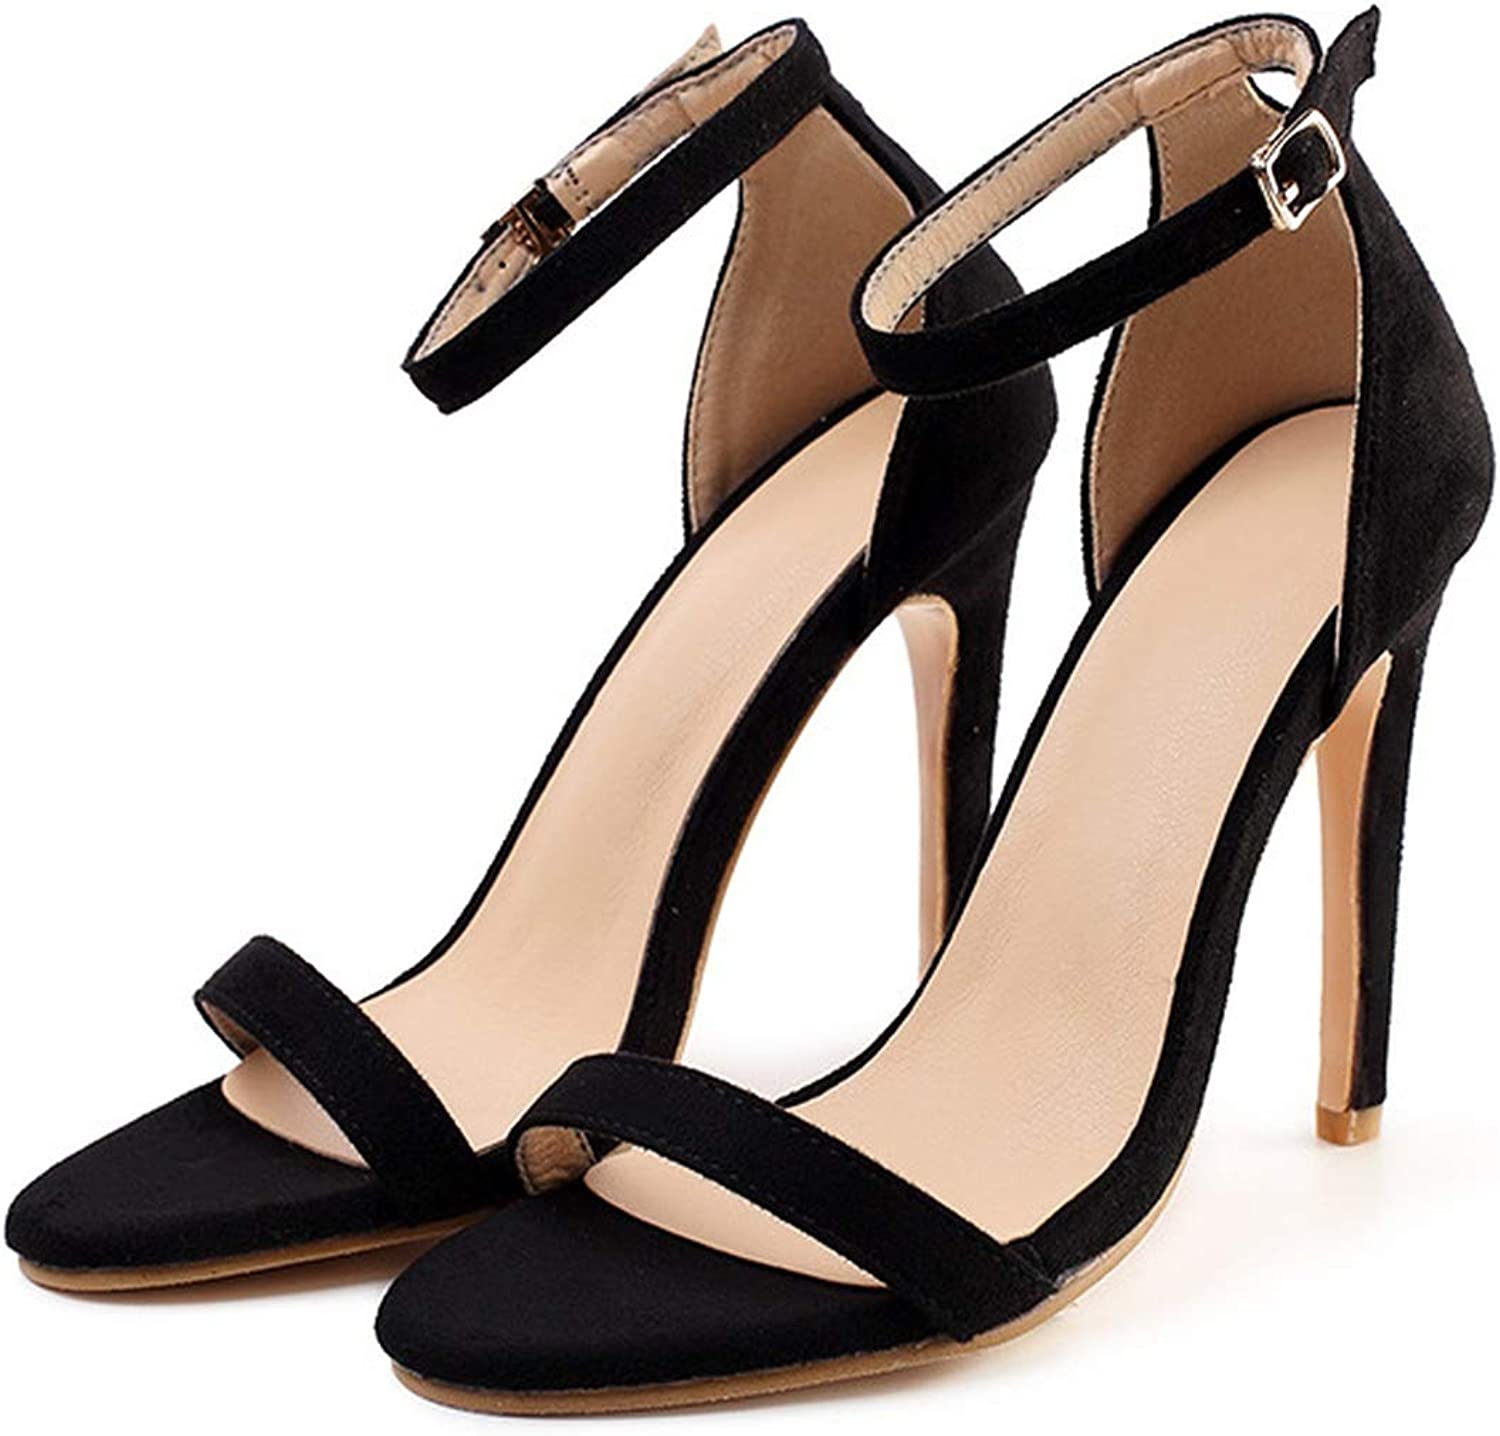 High Heel Sandals Fish Head Open-Toed Sandals Sexy shoes shoes Sandals with Buckle Wedding shoes